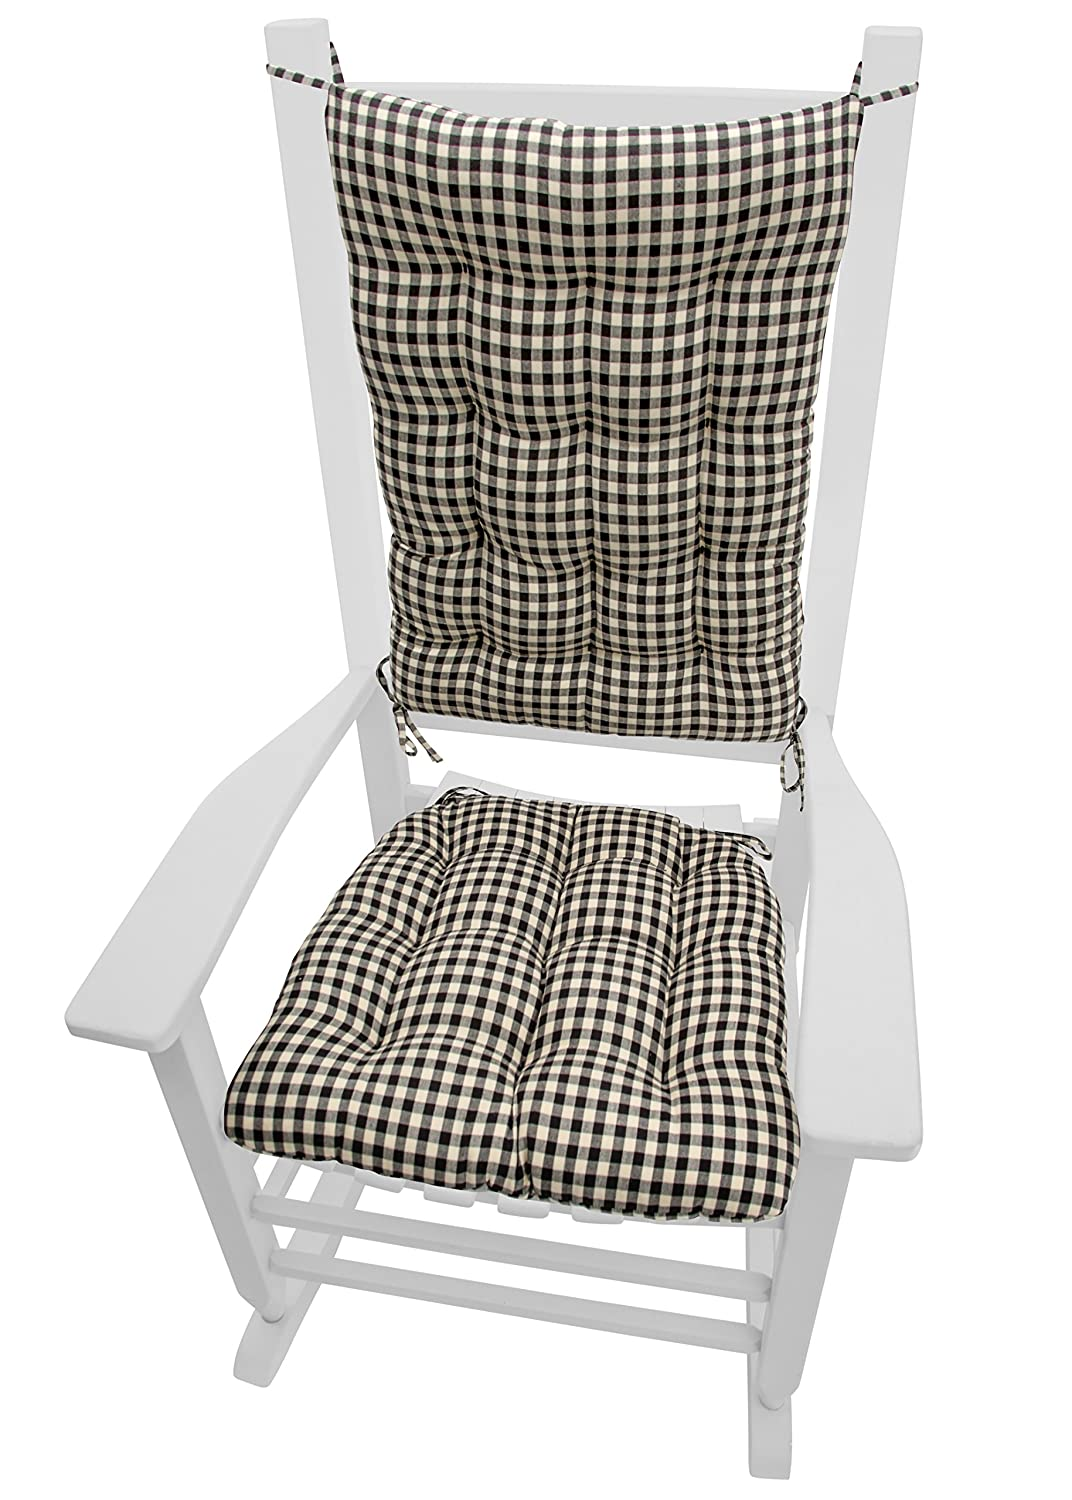 Bon Amazon.com: Barnett Products Rocking Chair Cushions   Checkers Black U0026  Cream   Size Extra Large   Latex Foam Fill, Reversible   Black U0026 White 1/4  Check: ...